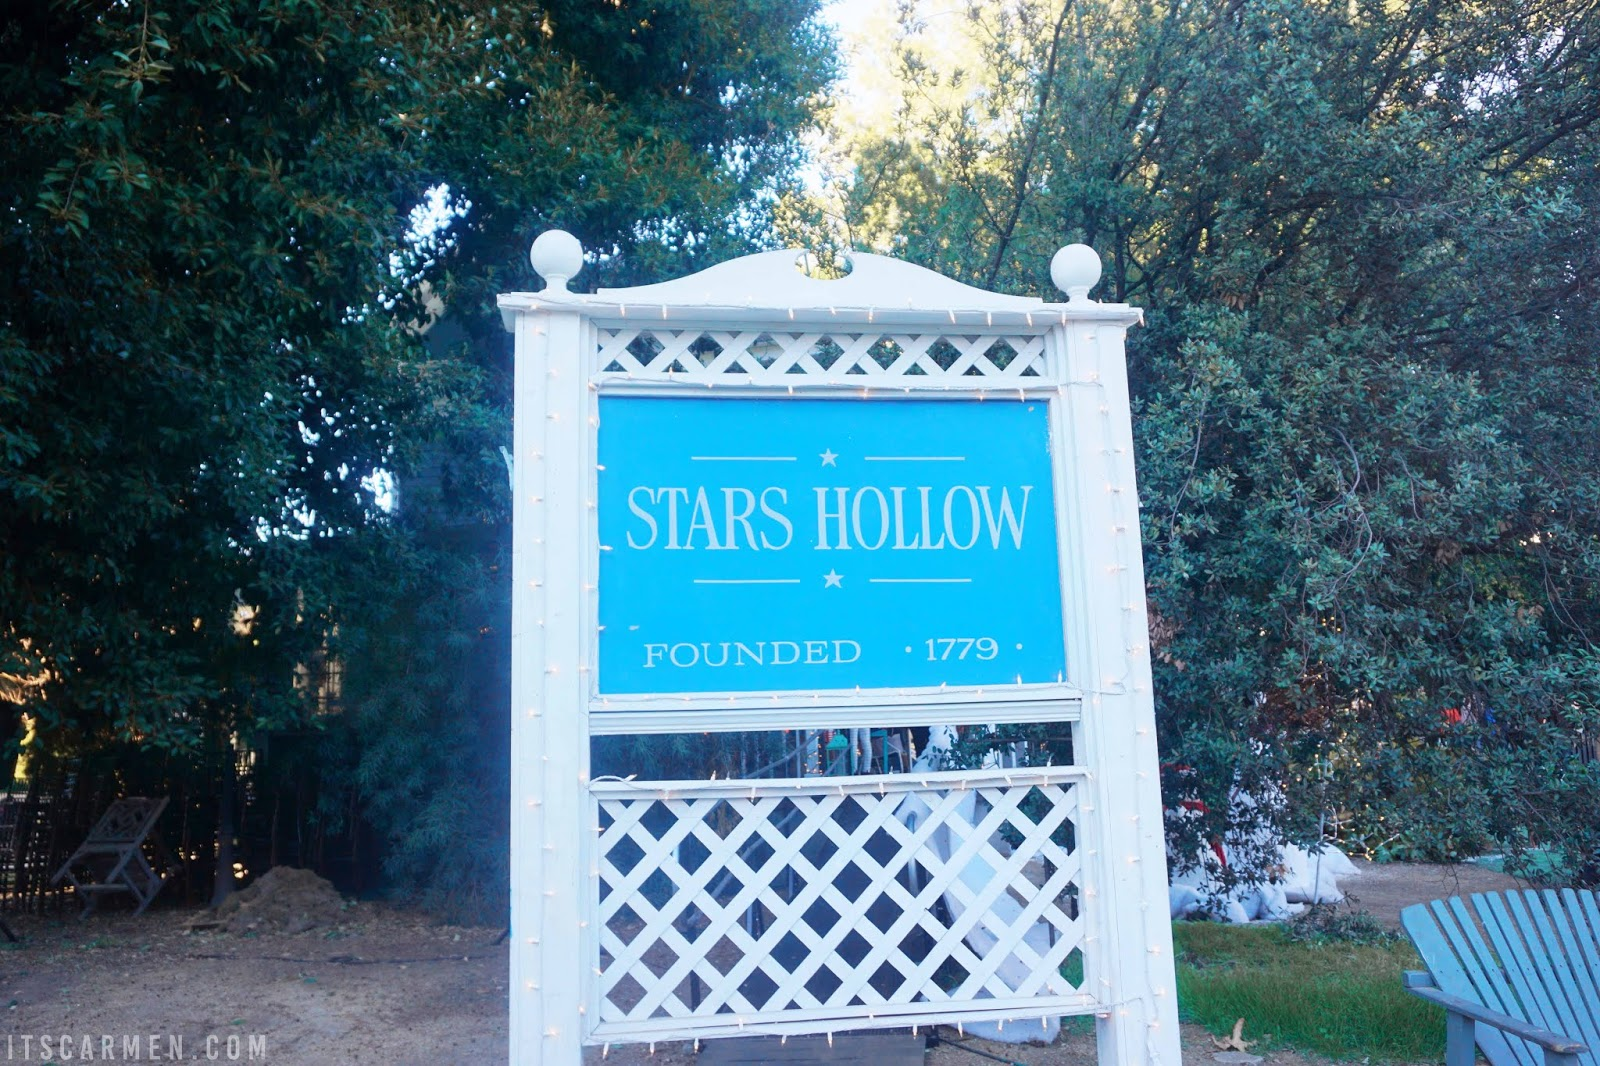 Visiting the Gilmore Girls Location: Where Was Gilmore Girls Filmed? Where Is Stars Hollow? Stars Hollow sign